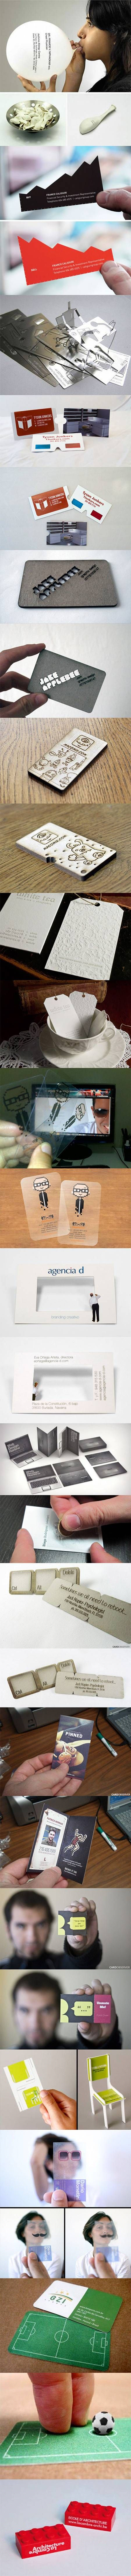 Let's face it, most business cards don't usually stick around for long, as most find their way to the trash bin or get lost in a dark corner once they're handed to someone. However, these eighteen geeky designs think outside the box in hopes that they'll be kept safe and handy.